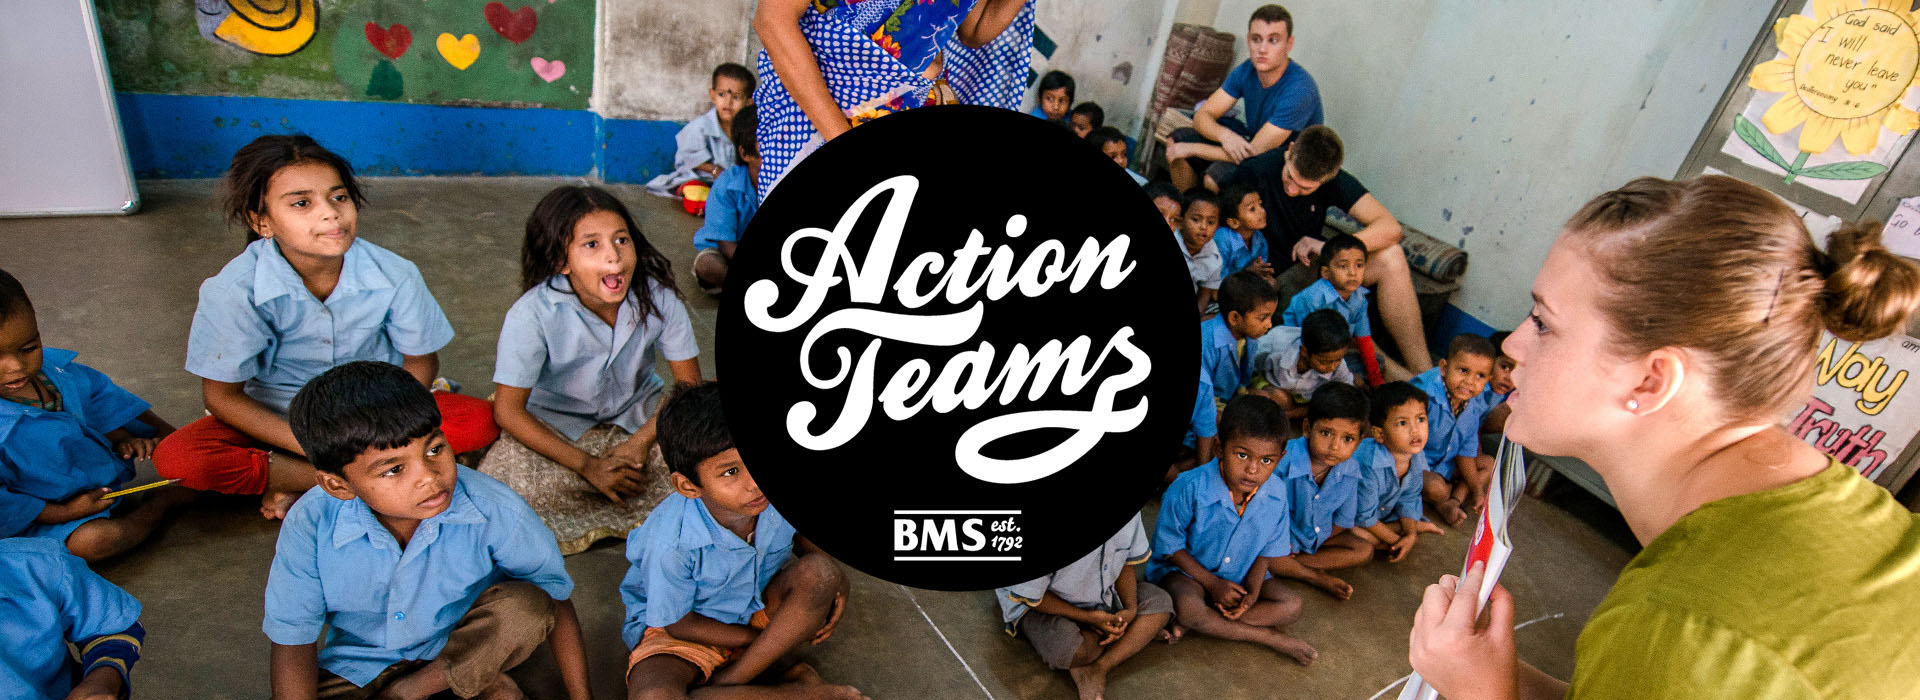 Action Teams - banner